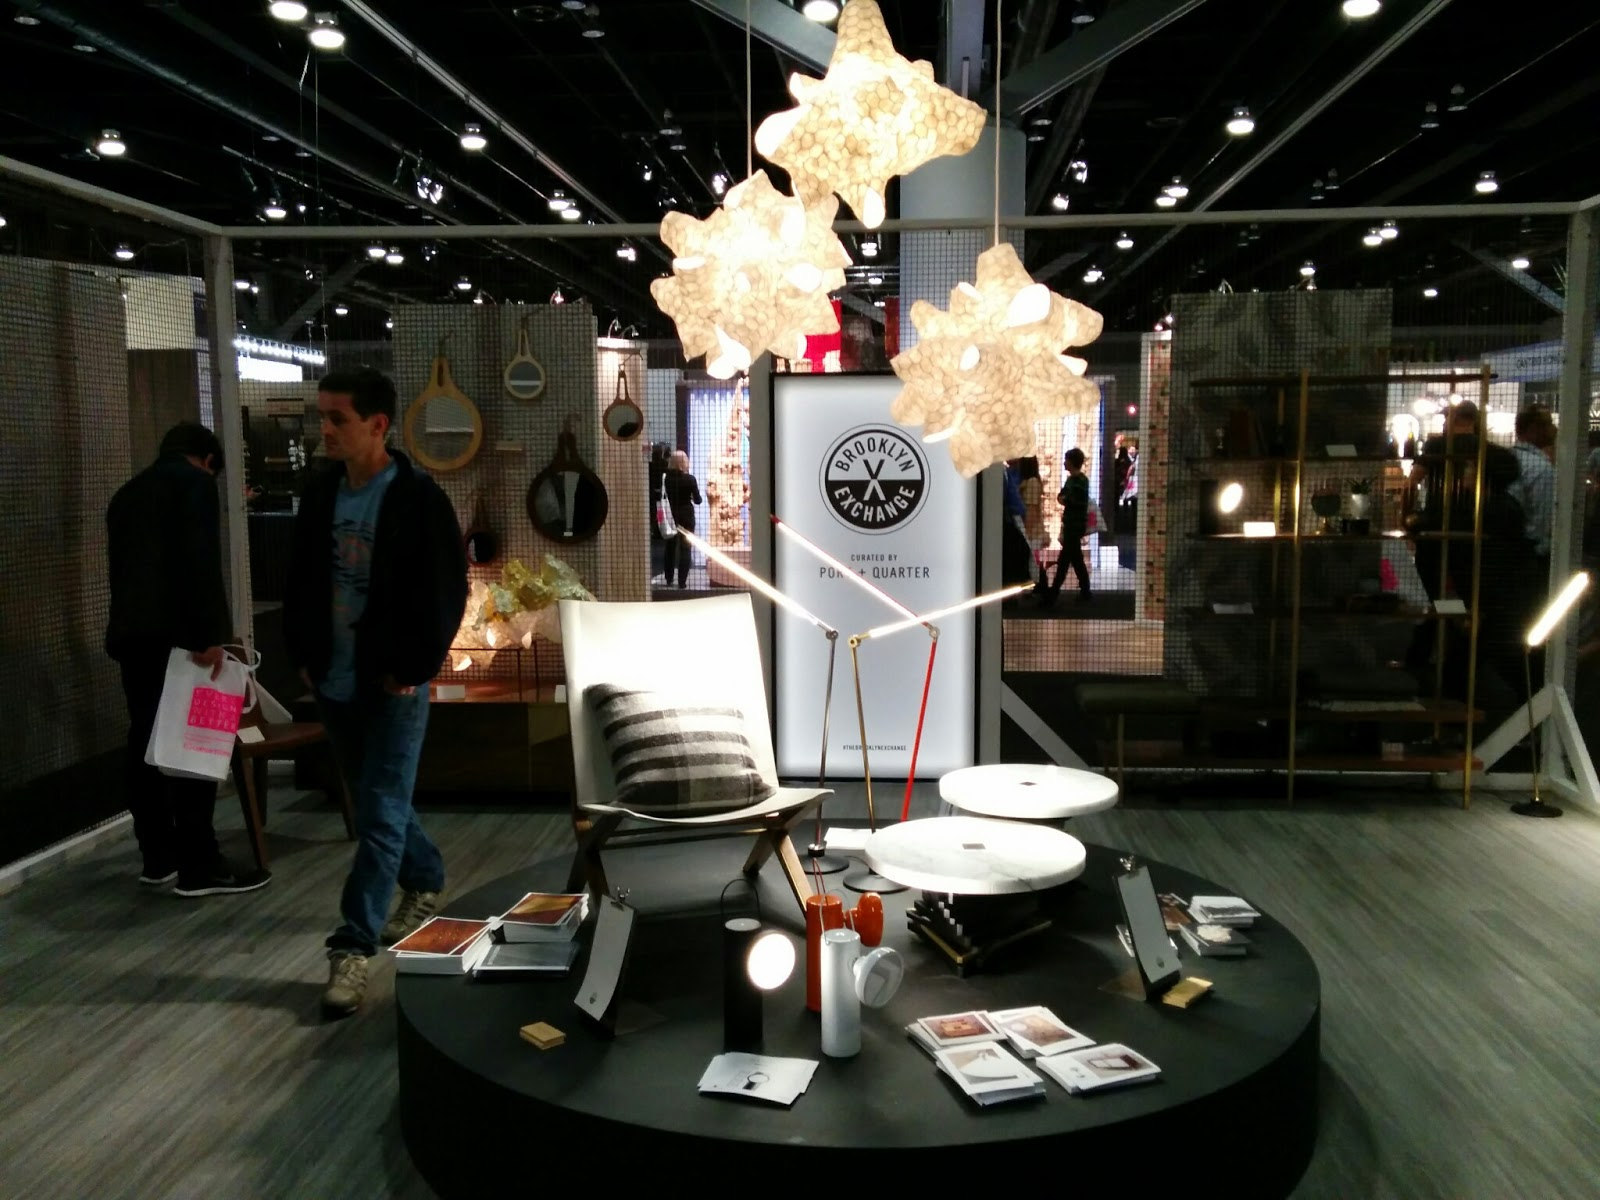 bold bright ideas at ids west in vancouver september 22nd to 25th